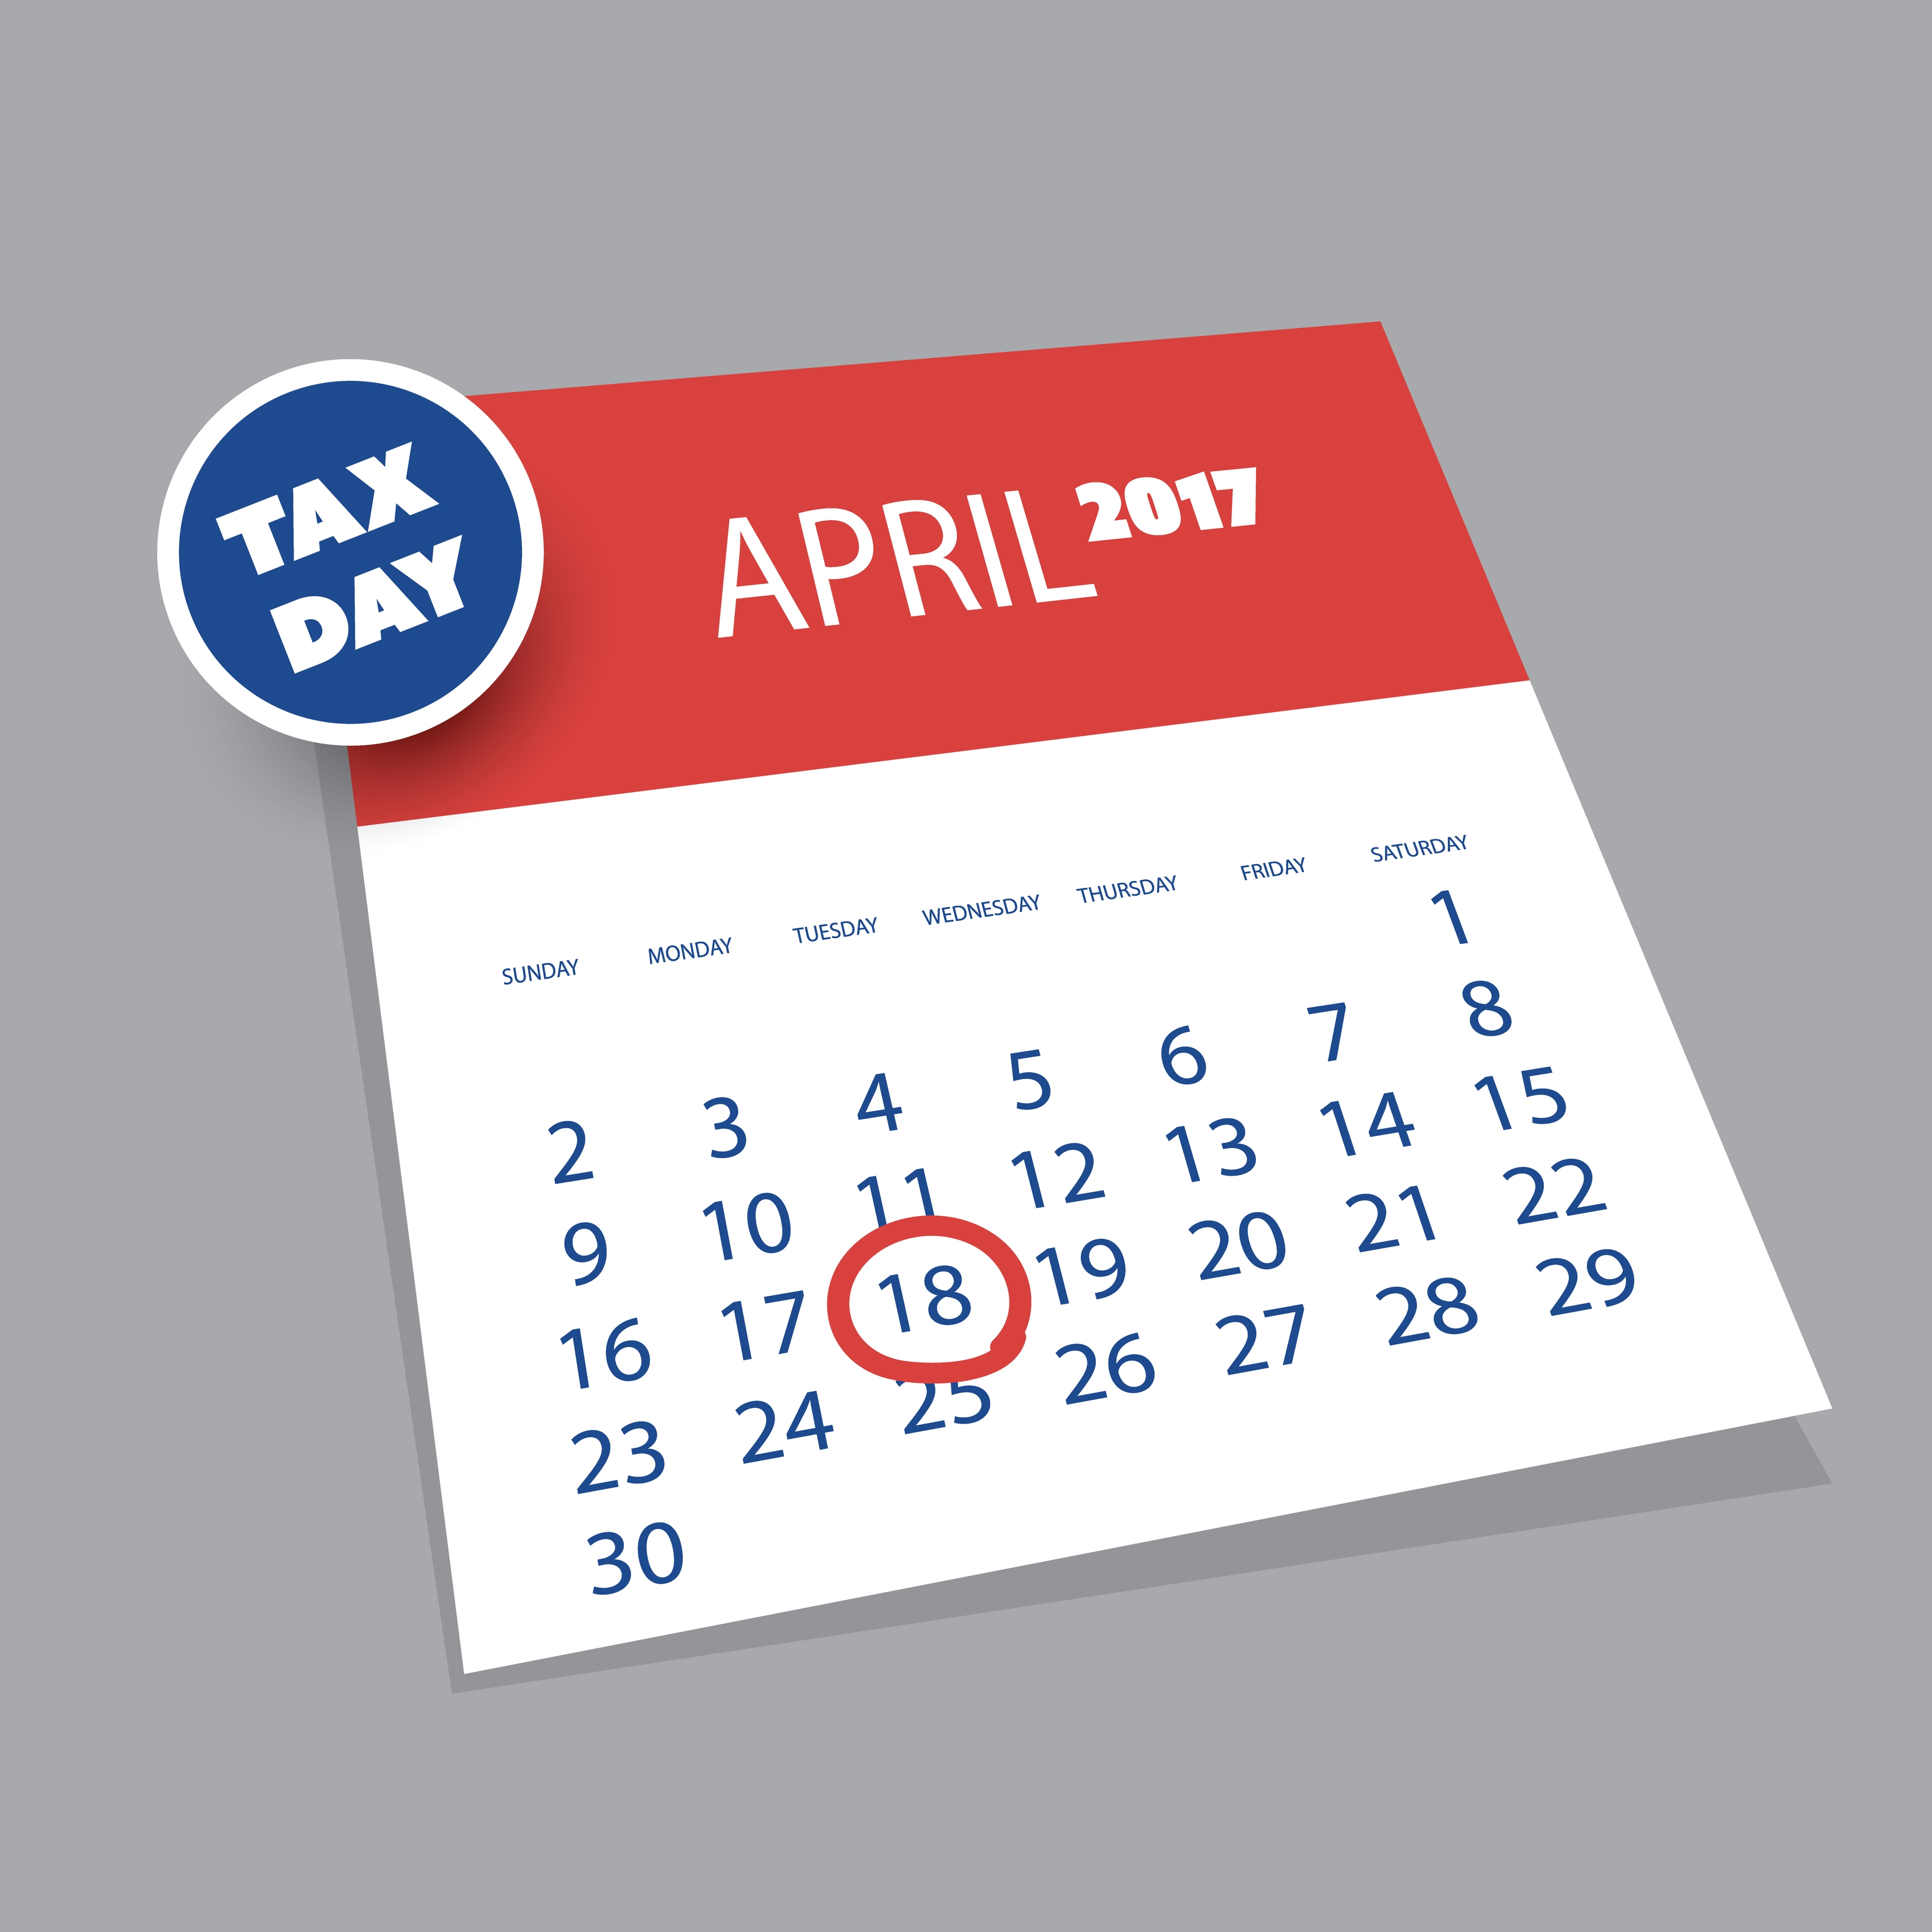 Tax Day Tuesday April 18